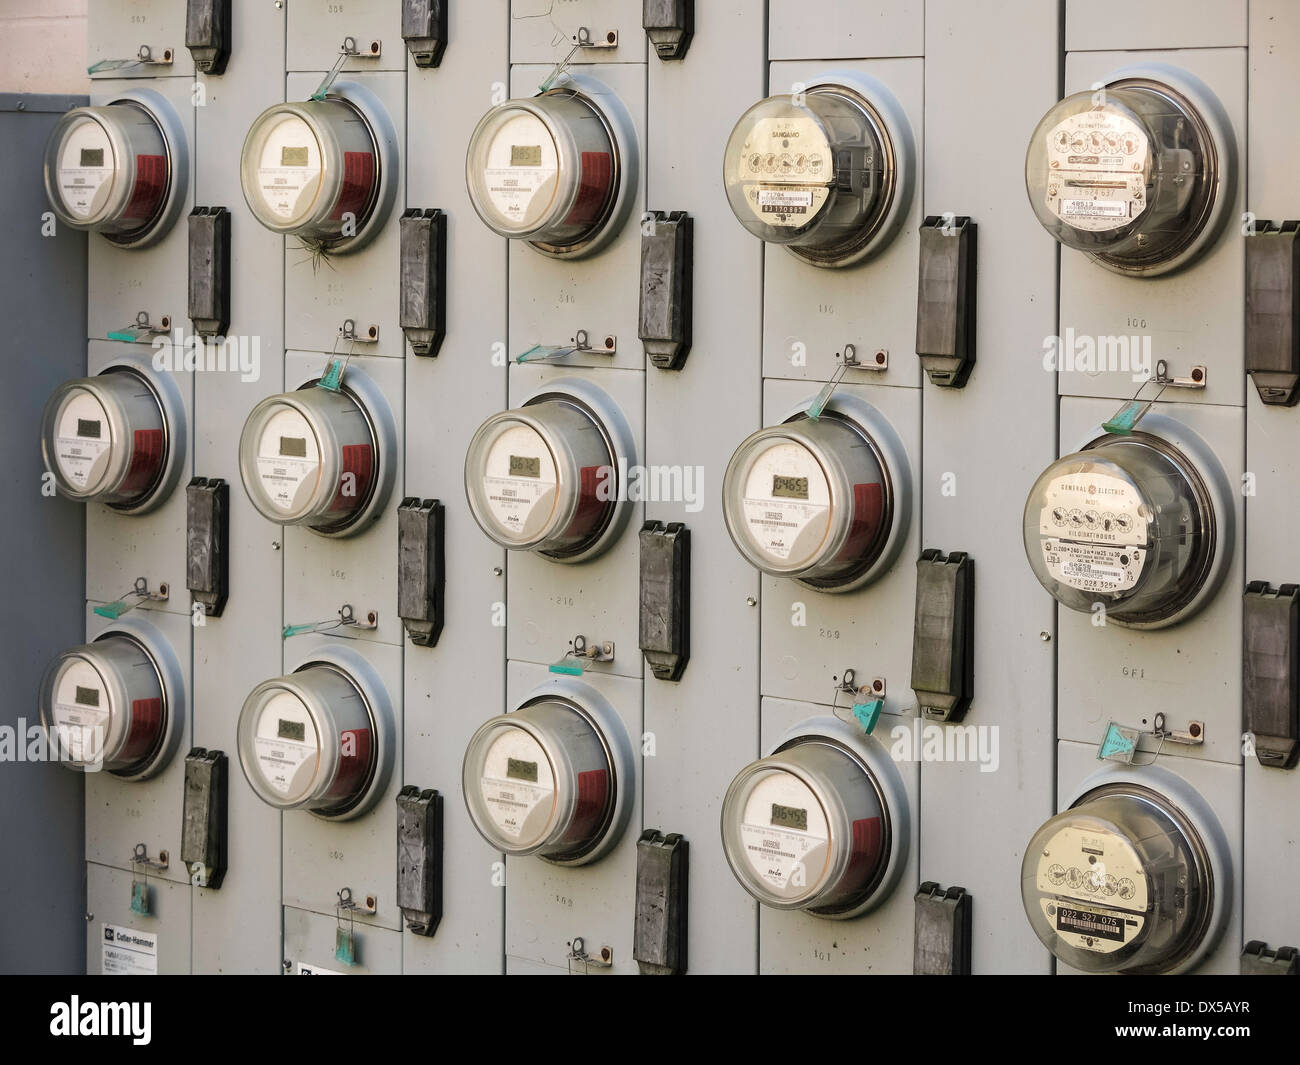 Array of Electricity Usage Meters for an Apartment Complex, USA - Stock Image